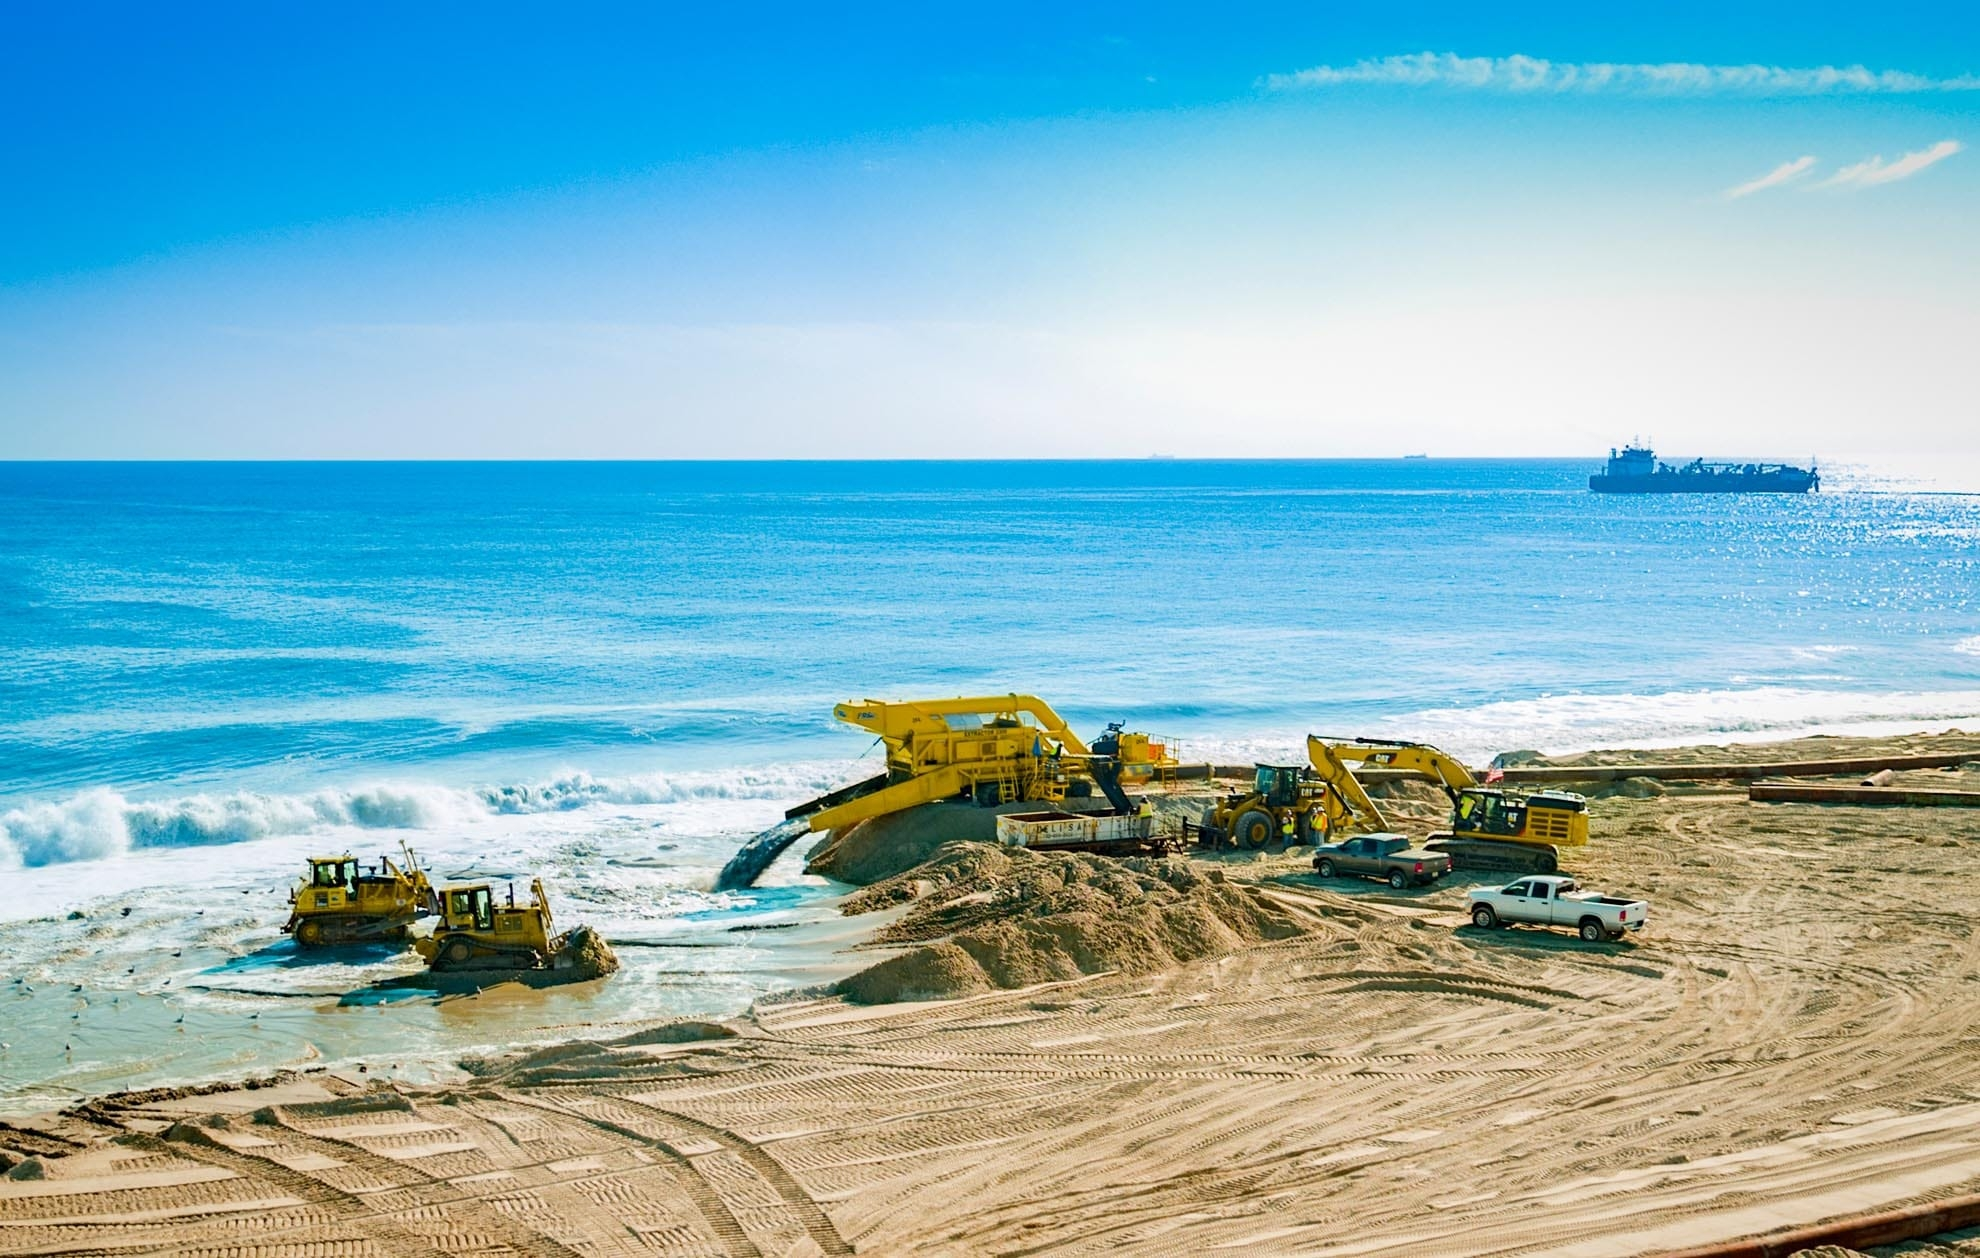 Drone Photograph of Excavating equipment Rebuilding Beach on the New Jersey Shore